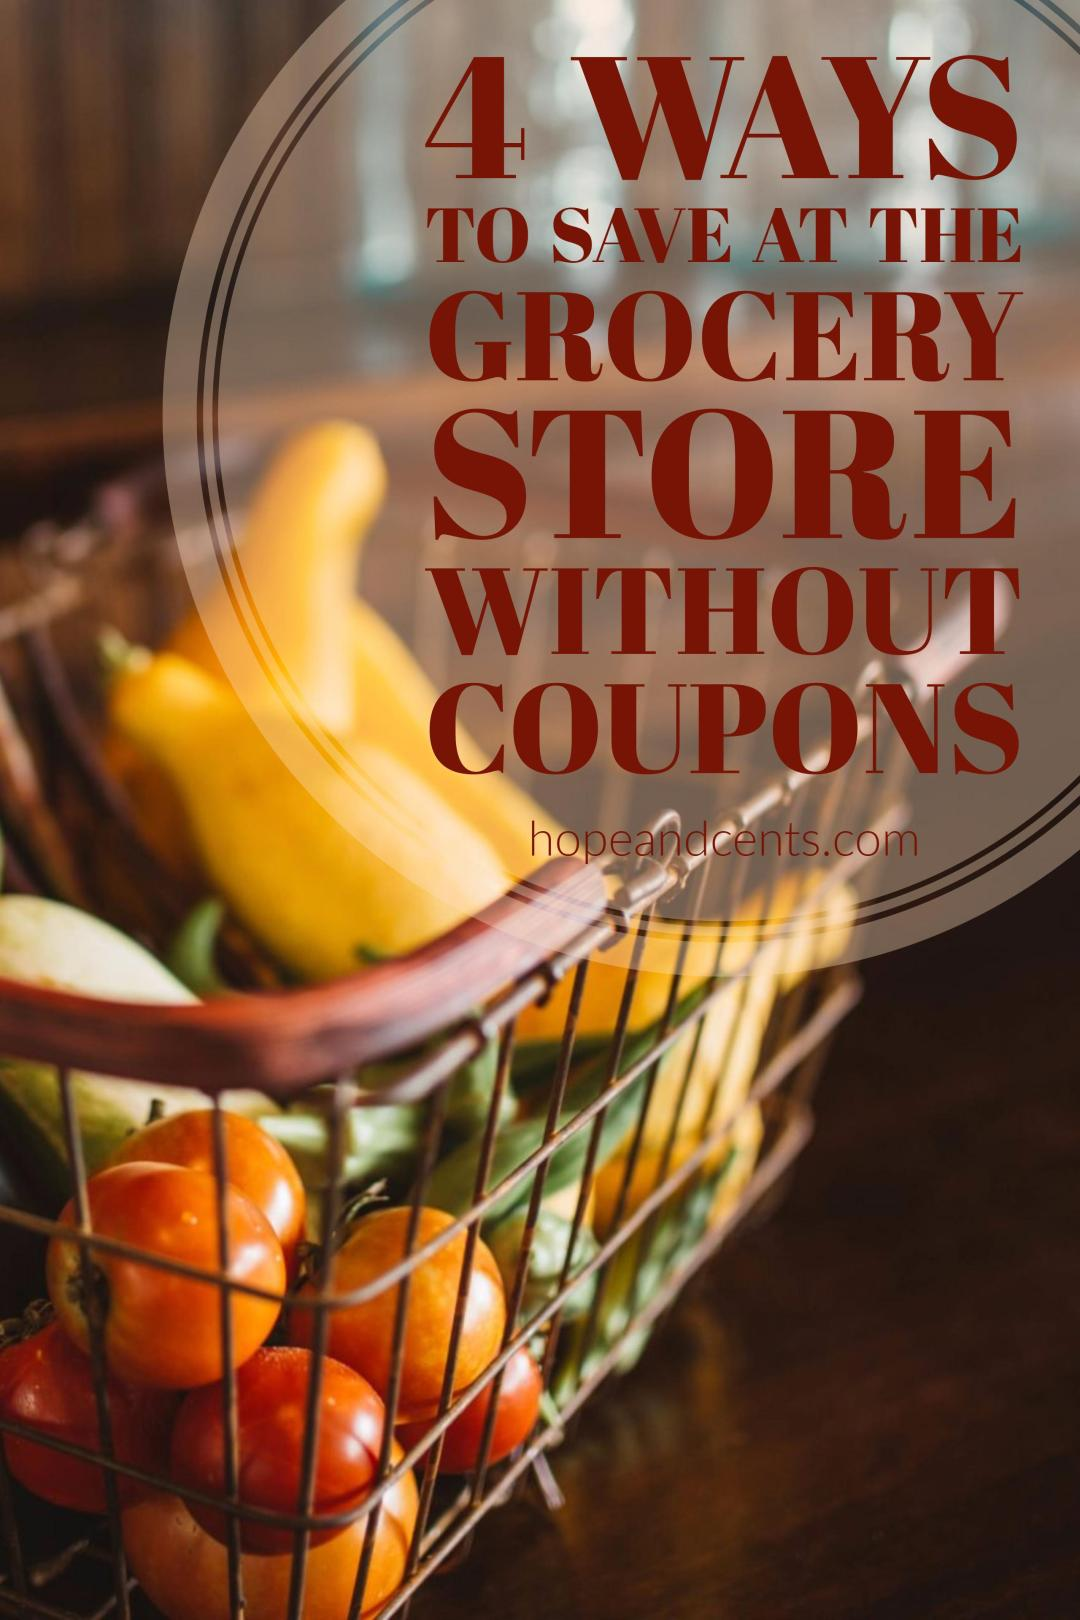 If you are trying to reduce your expenses, you have probably already learned that the amount you spend on groceries has a HUGE impact on your monthly budget. In fact, it is most likely one of your highest non-fixed categories.